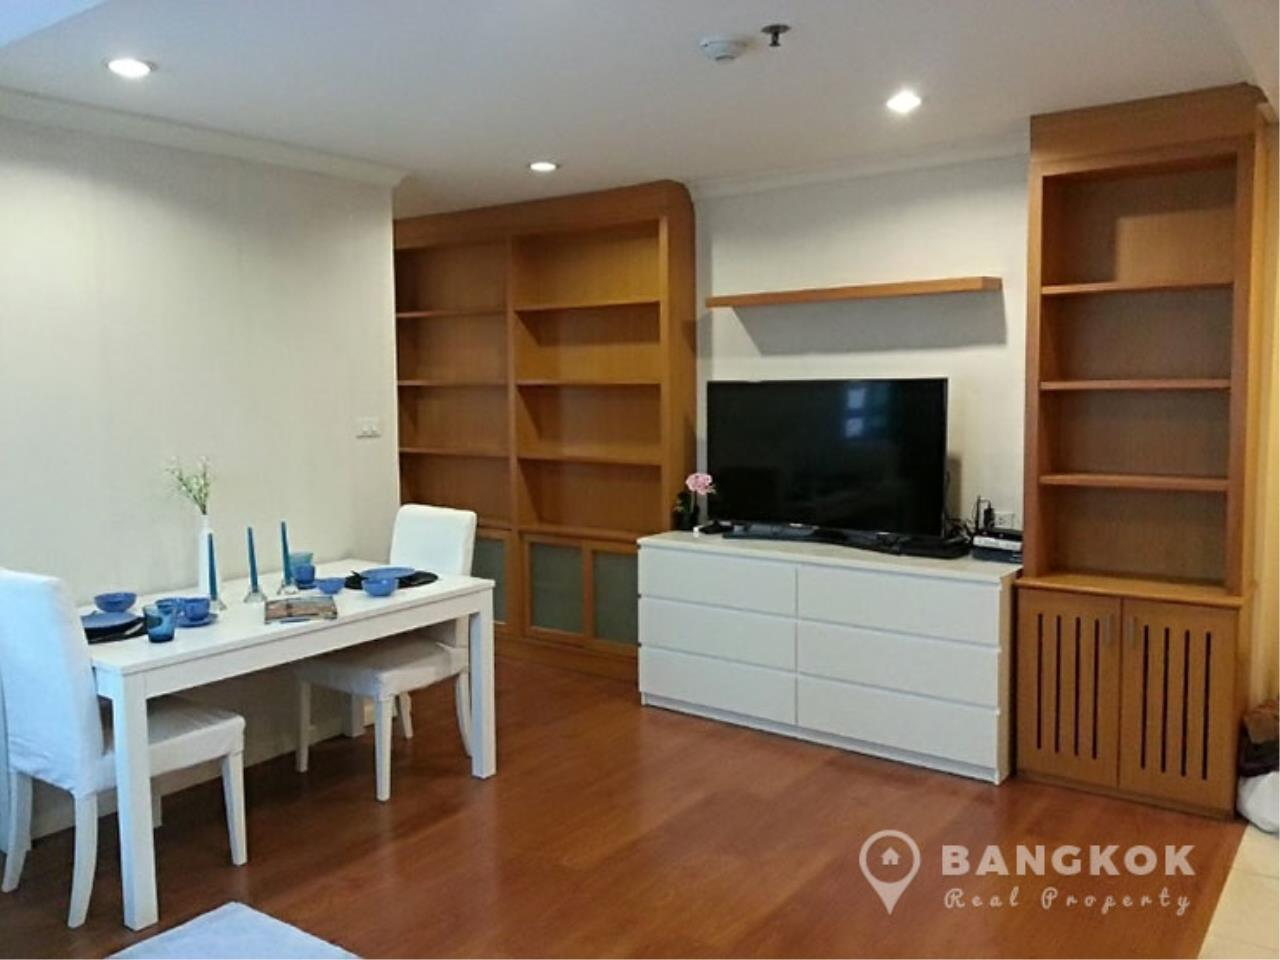 Bangkok Real Property Agency's Grand Parkview Asoke | Spacious 2 Bed 1 Bath Penthouse with Terrace 13